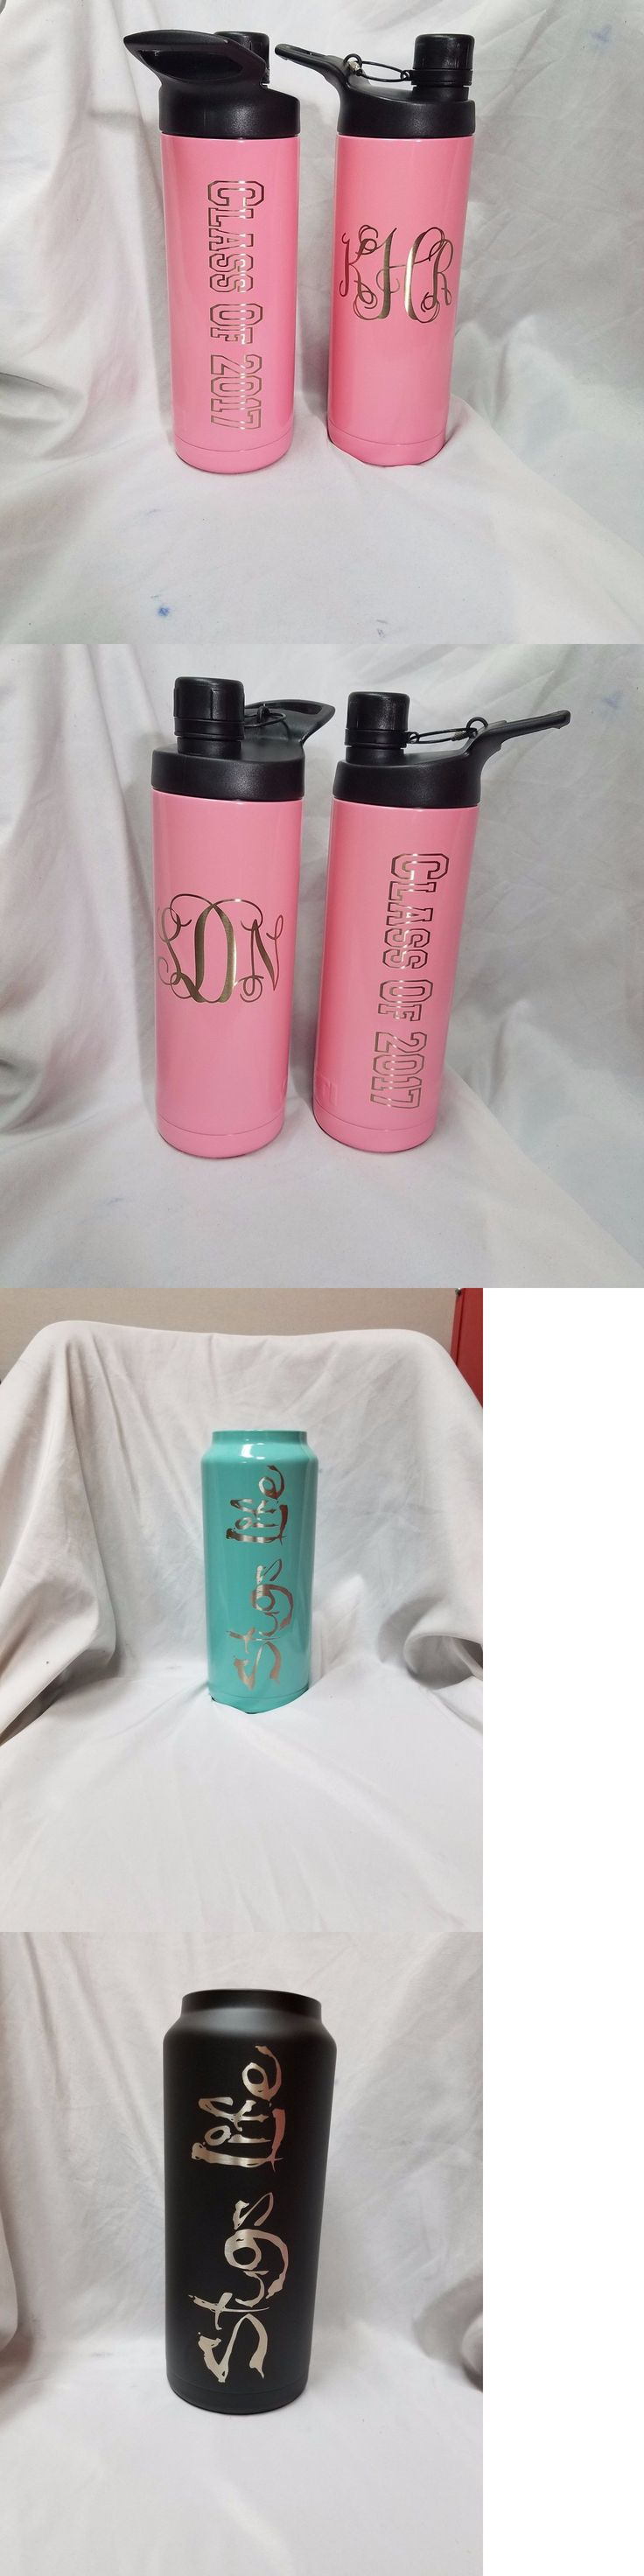 Other Camping Cooking Supplies 16036: Yeti 18 Oz Rambler Sport Bottle Custom Powder Coated With Your Name No Decals! -> BUY IT NOW ONLY: $39.99 on eBay!